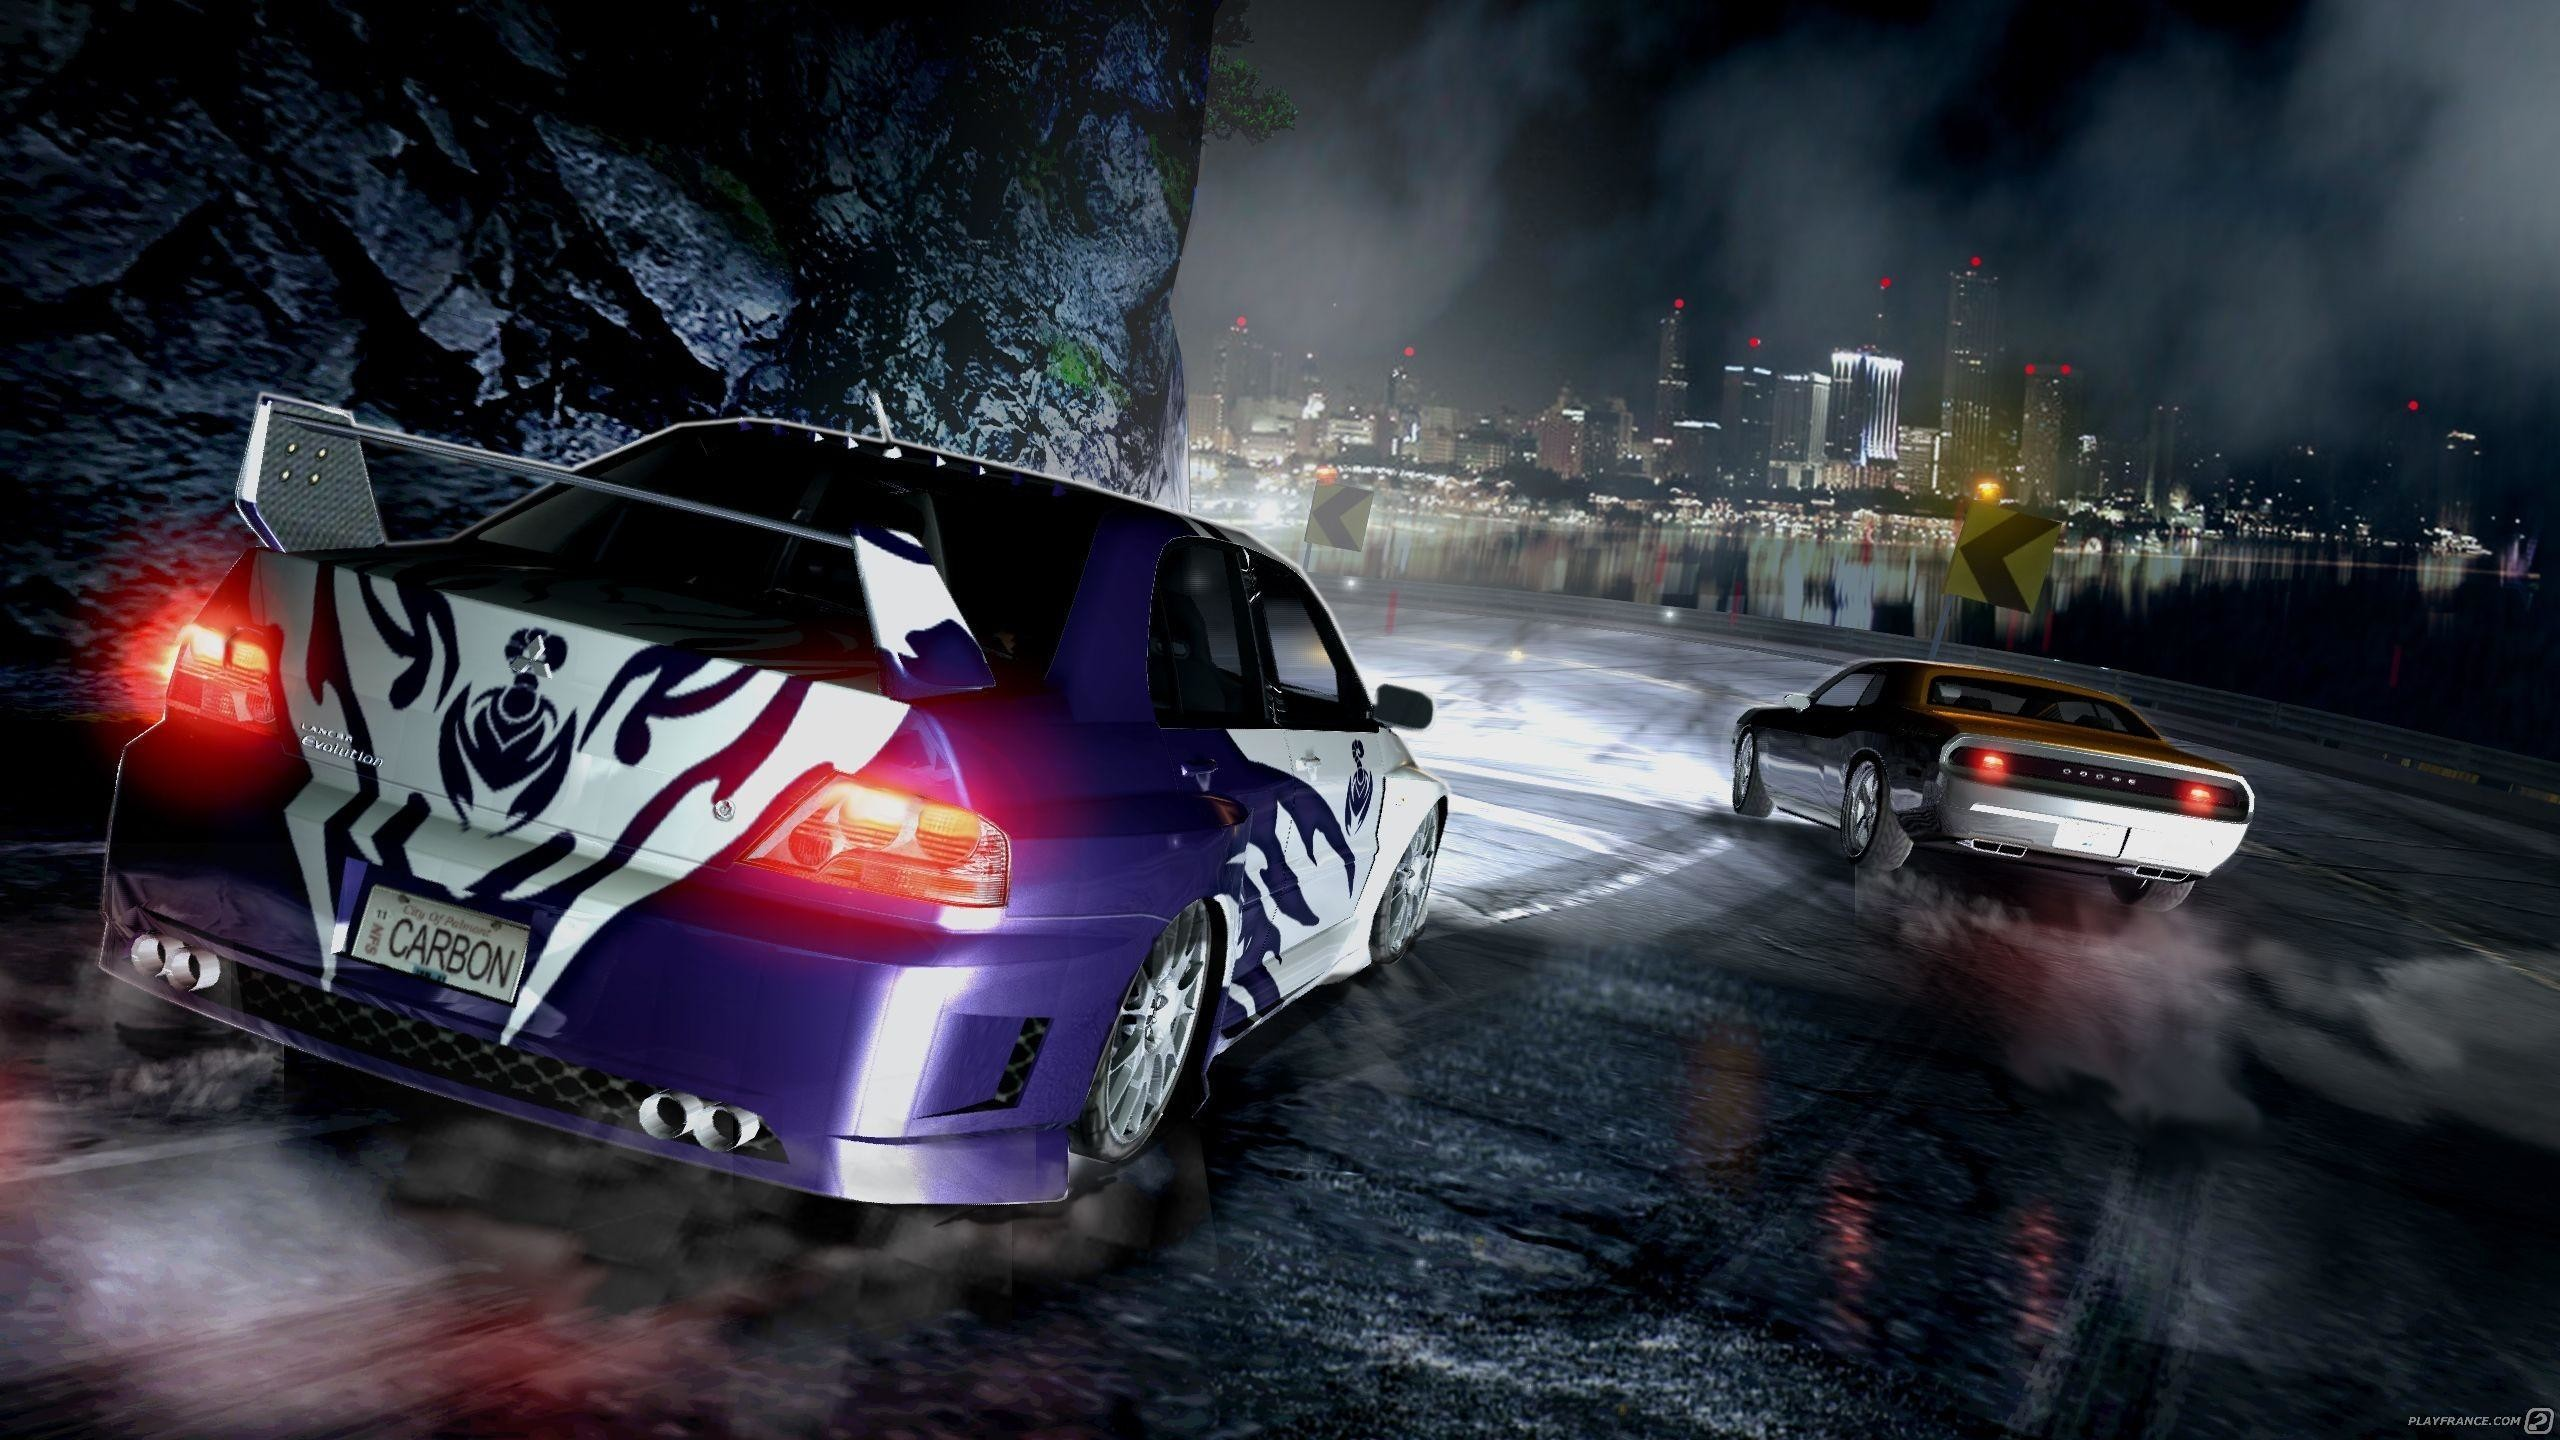 2560x1440 Need For Speed Carbon wallpaper - 1242587